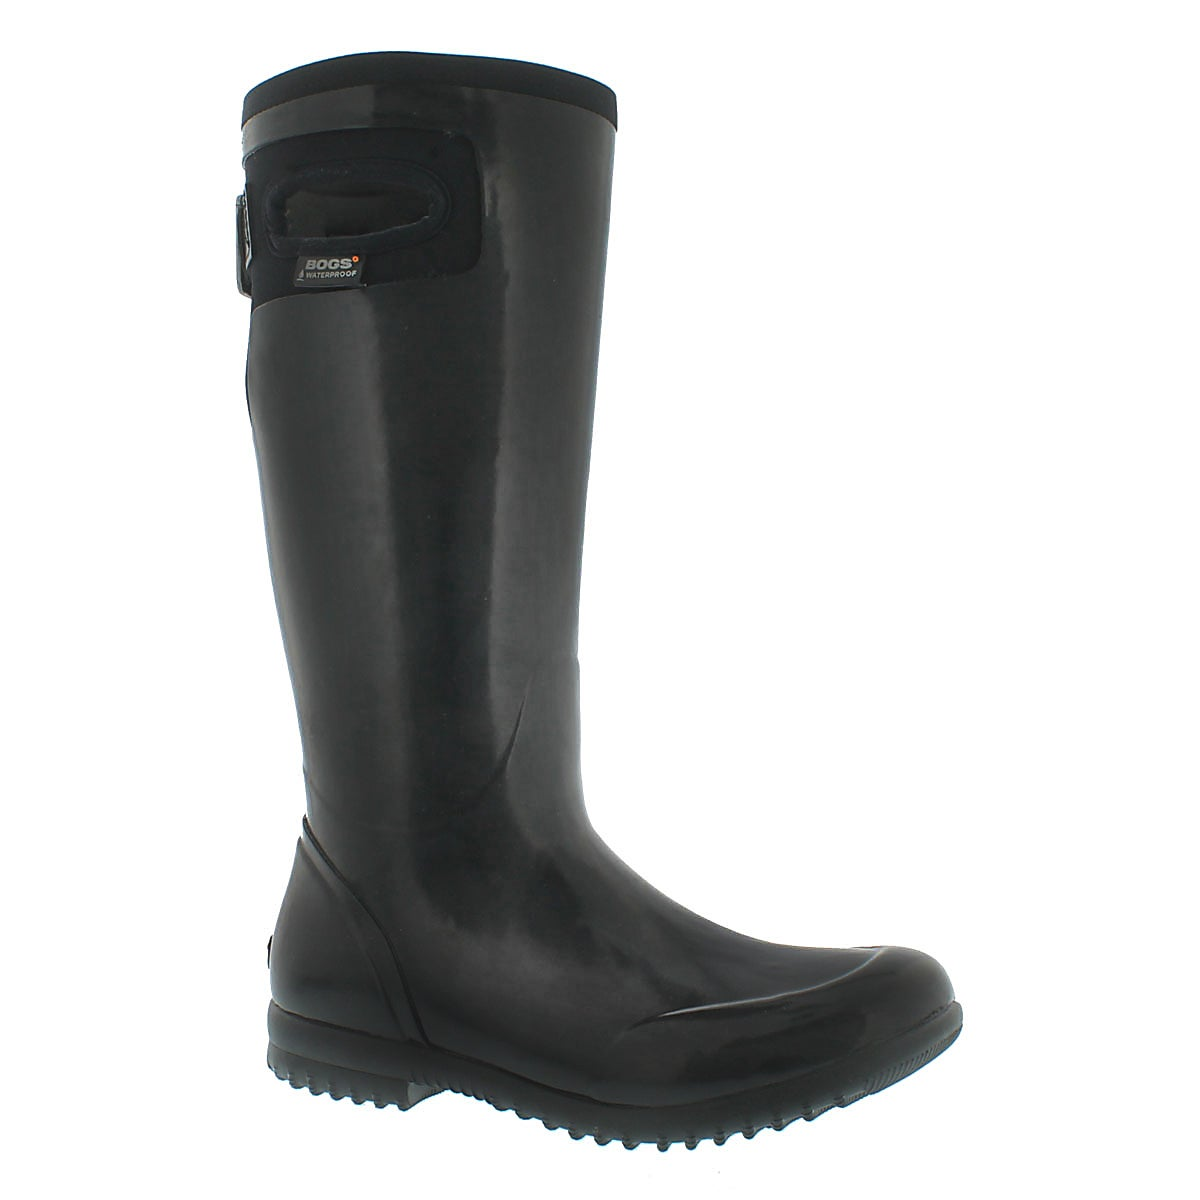 Lds Tacoma Solid Tall black rain boot